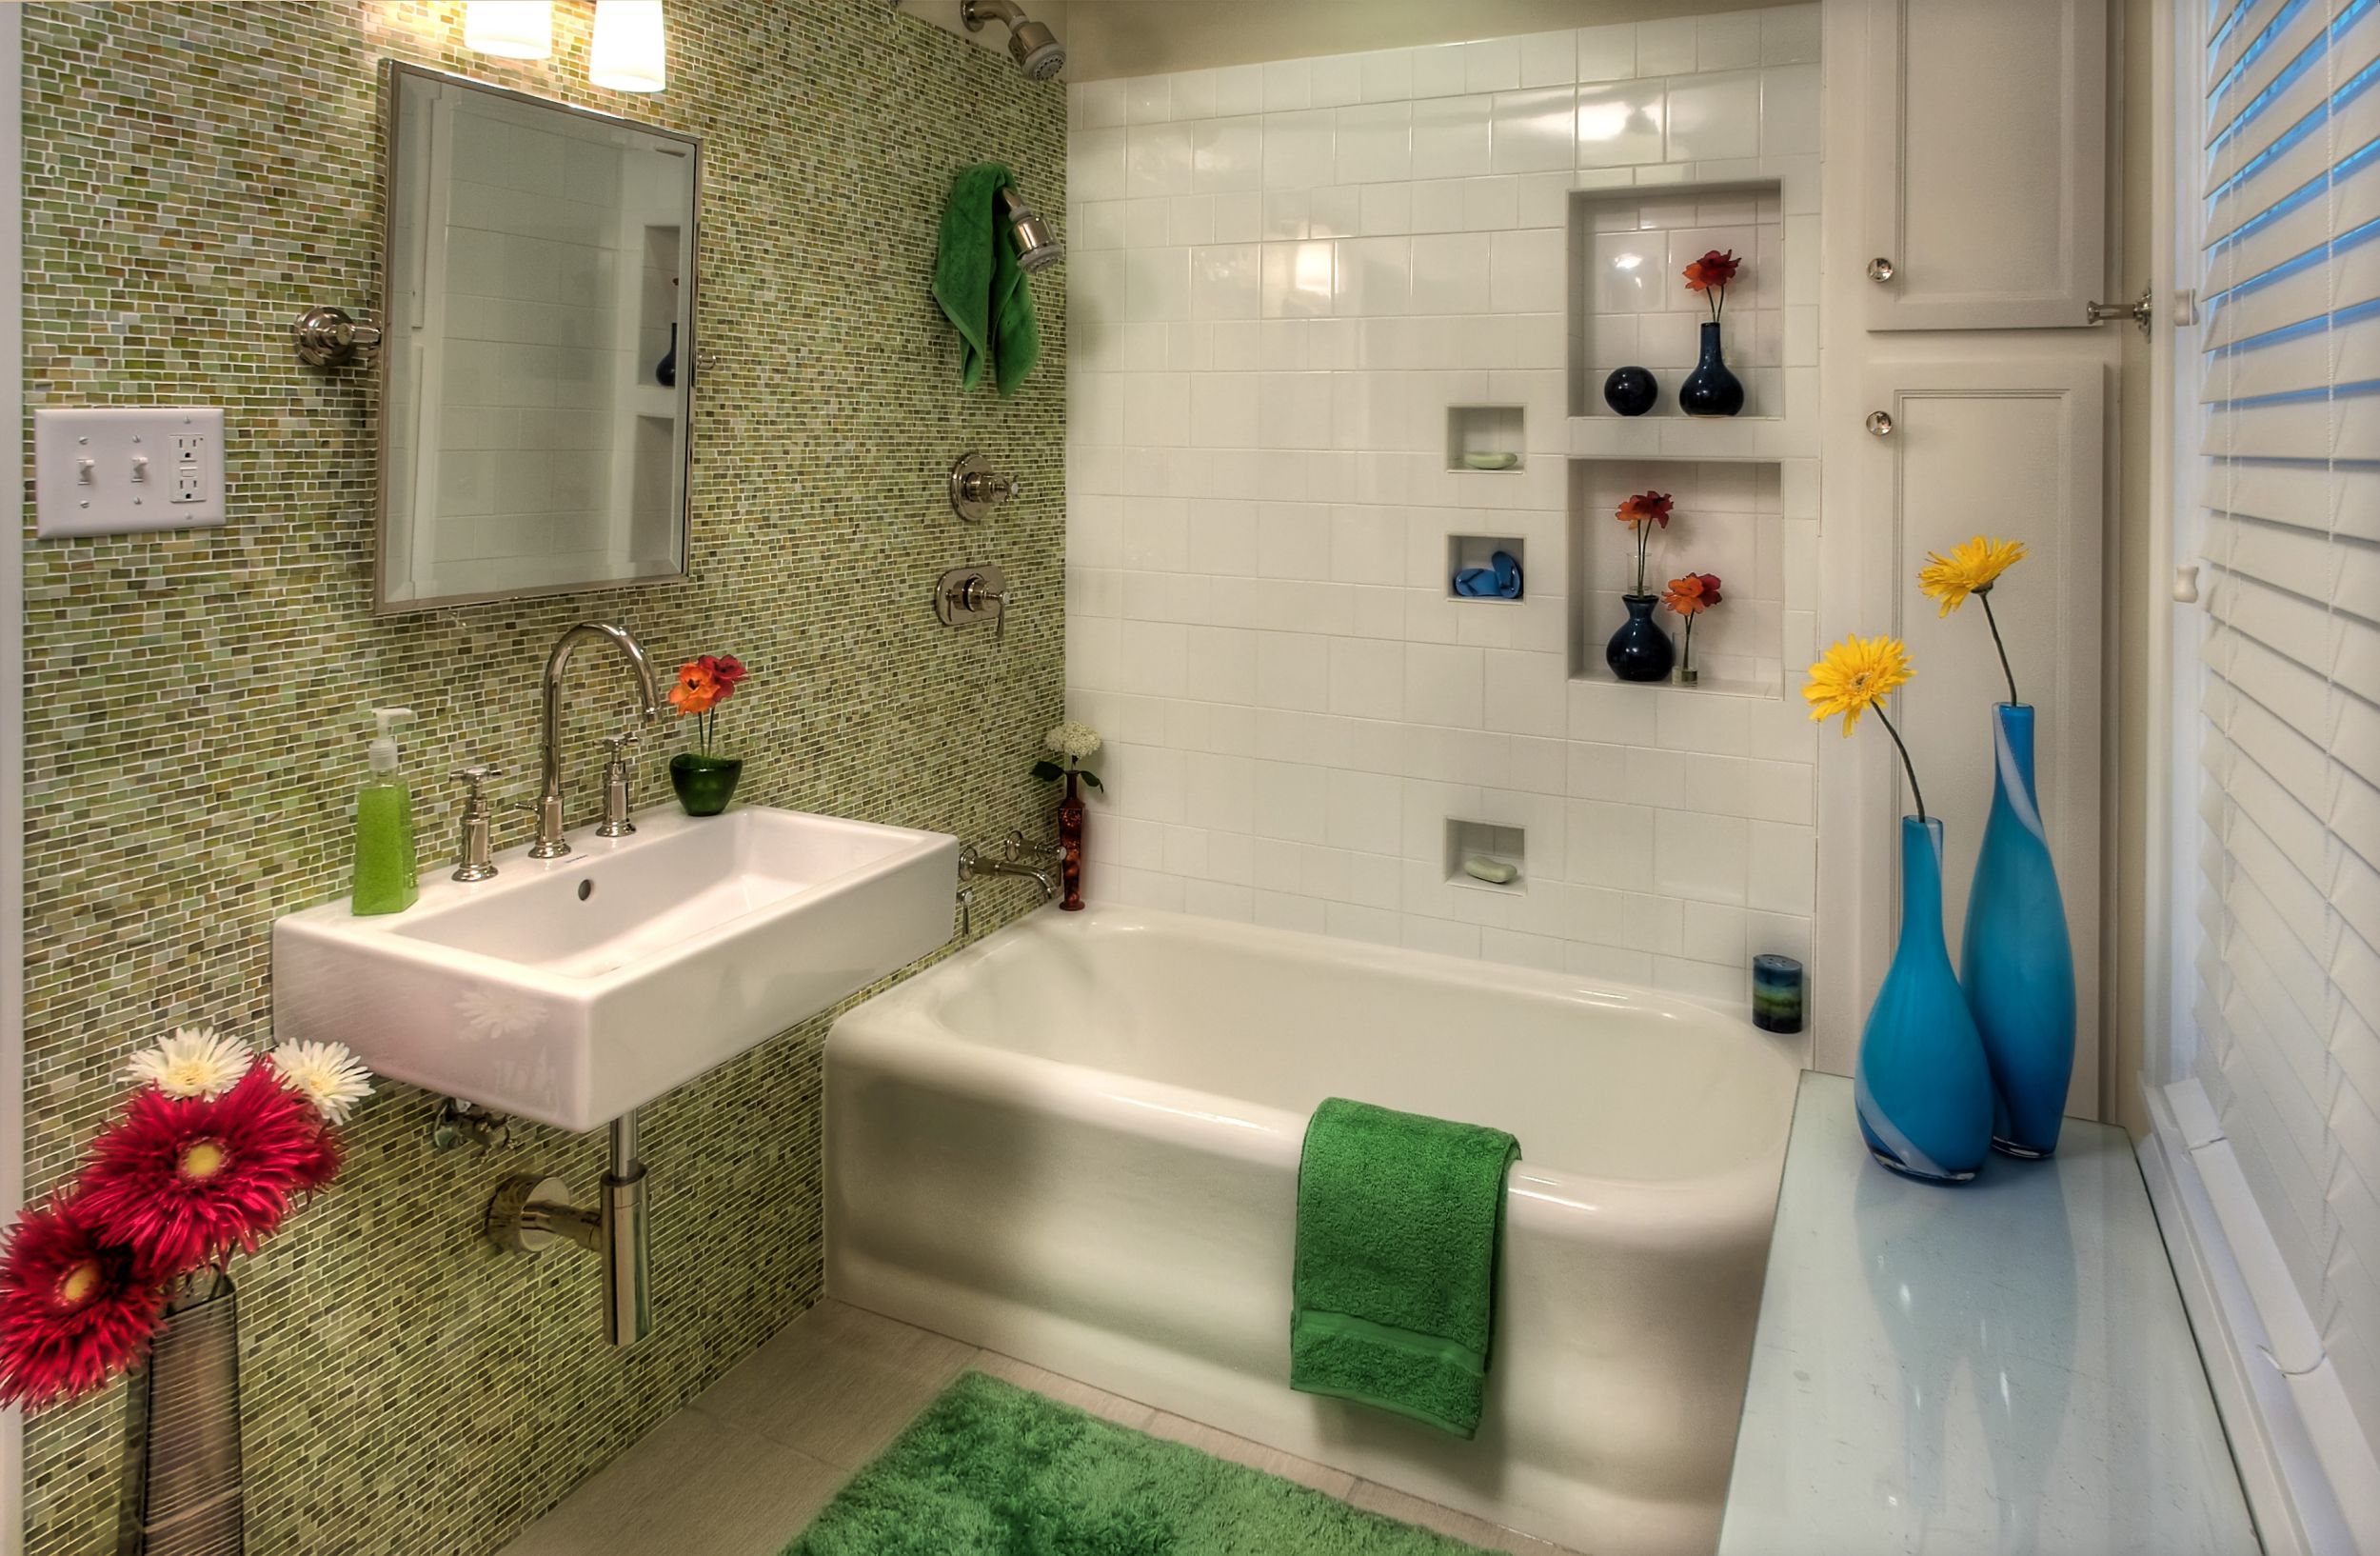 Bathroom remodel with new tile. Green tile accent wall and clean white tile shower wall.